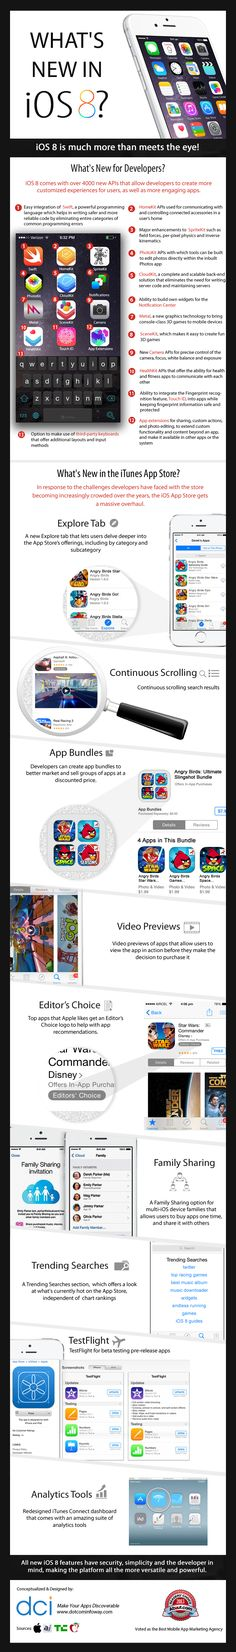 What's New in iOS 8? - #infographic #ios 8